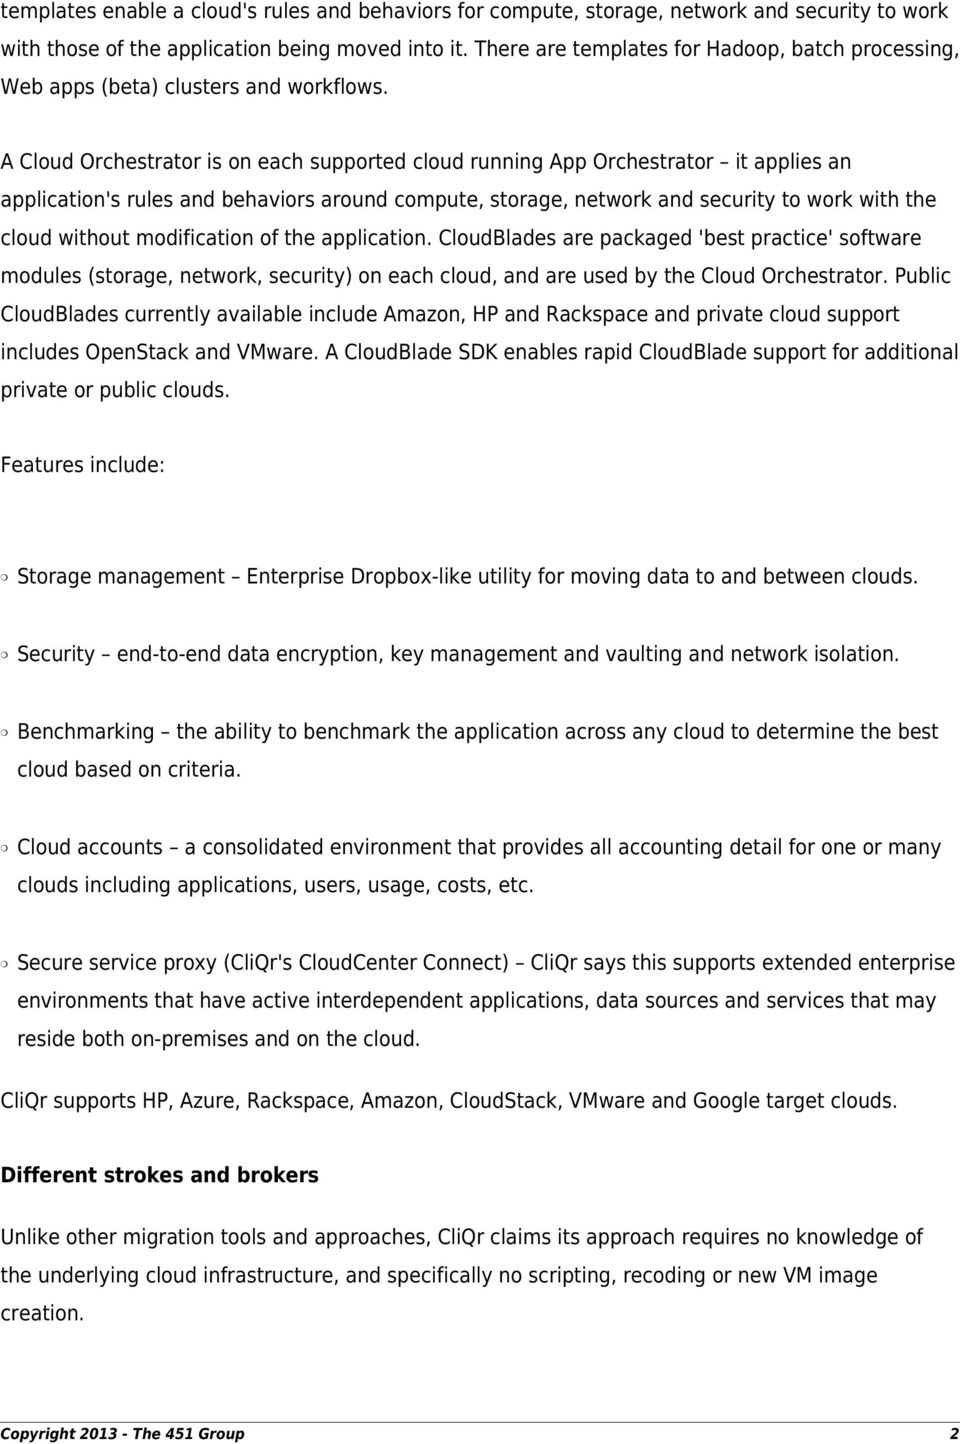 A Cloud Orchestrator is on each supported cloud running App Orchestrator it applies an application's rules and behaviors around compute, storage, network and security to work with the cloud without